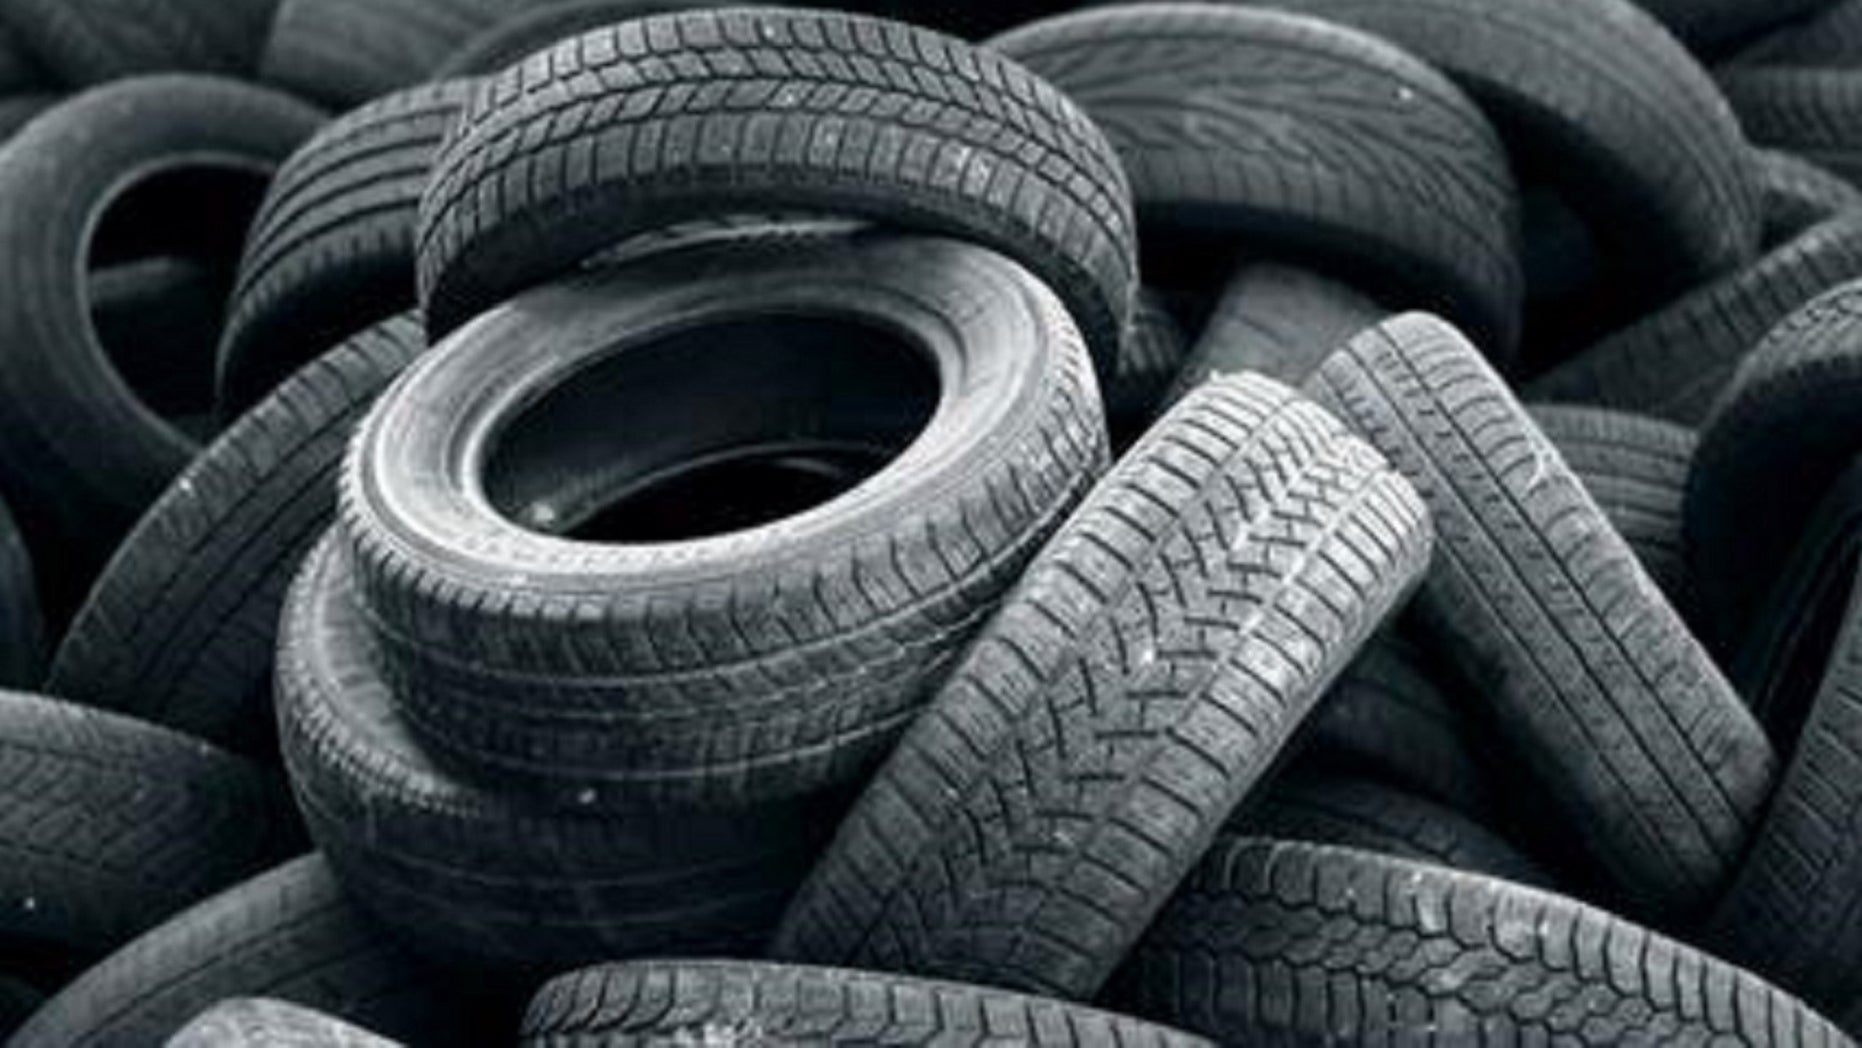 FILE: A stockpile of tires. A Houstonwoman's car windshield was smashed when a tire flew and hit her vehicle on Thursday morning.